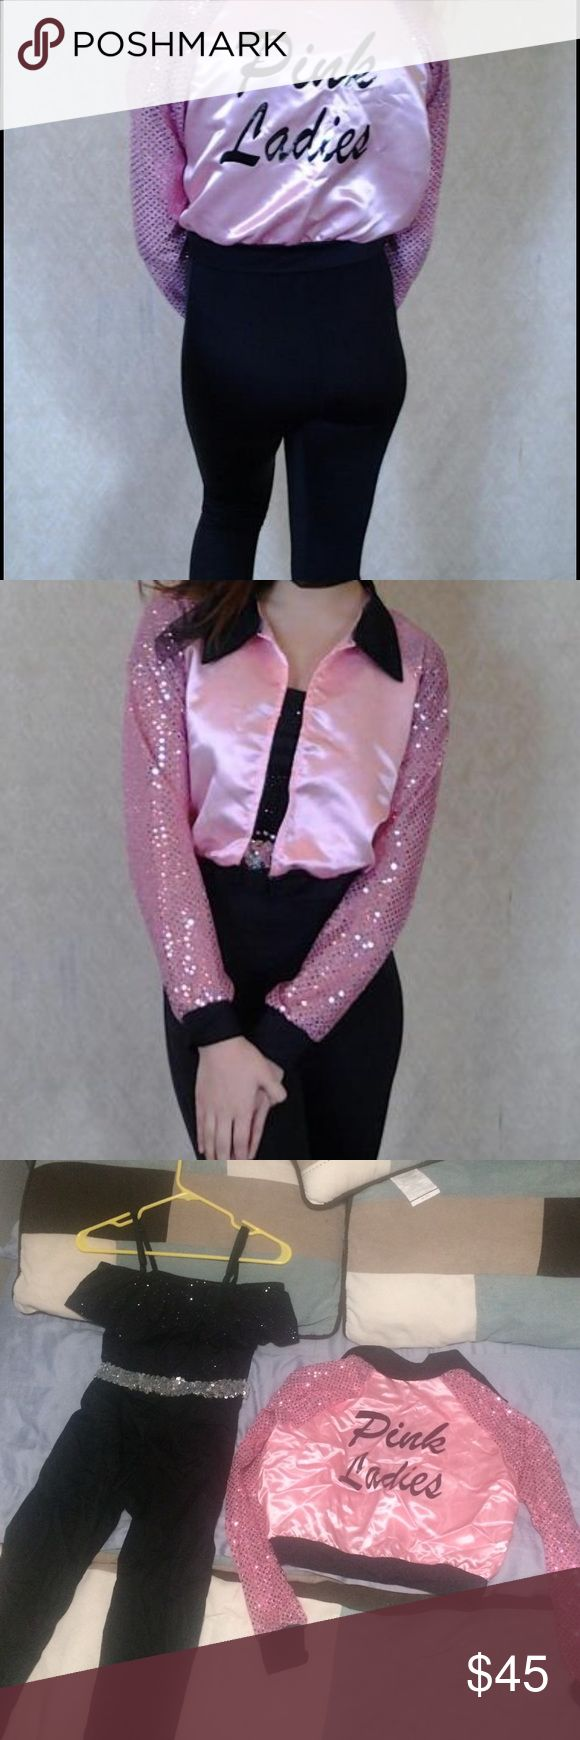 Pink ladies costume Off the shoulder legging leotard with sparkly silver belt Pink ladies jacket with sequin sleeves costume gallery Costumes